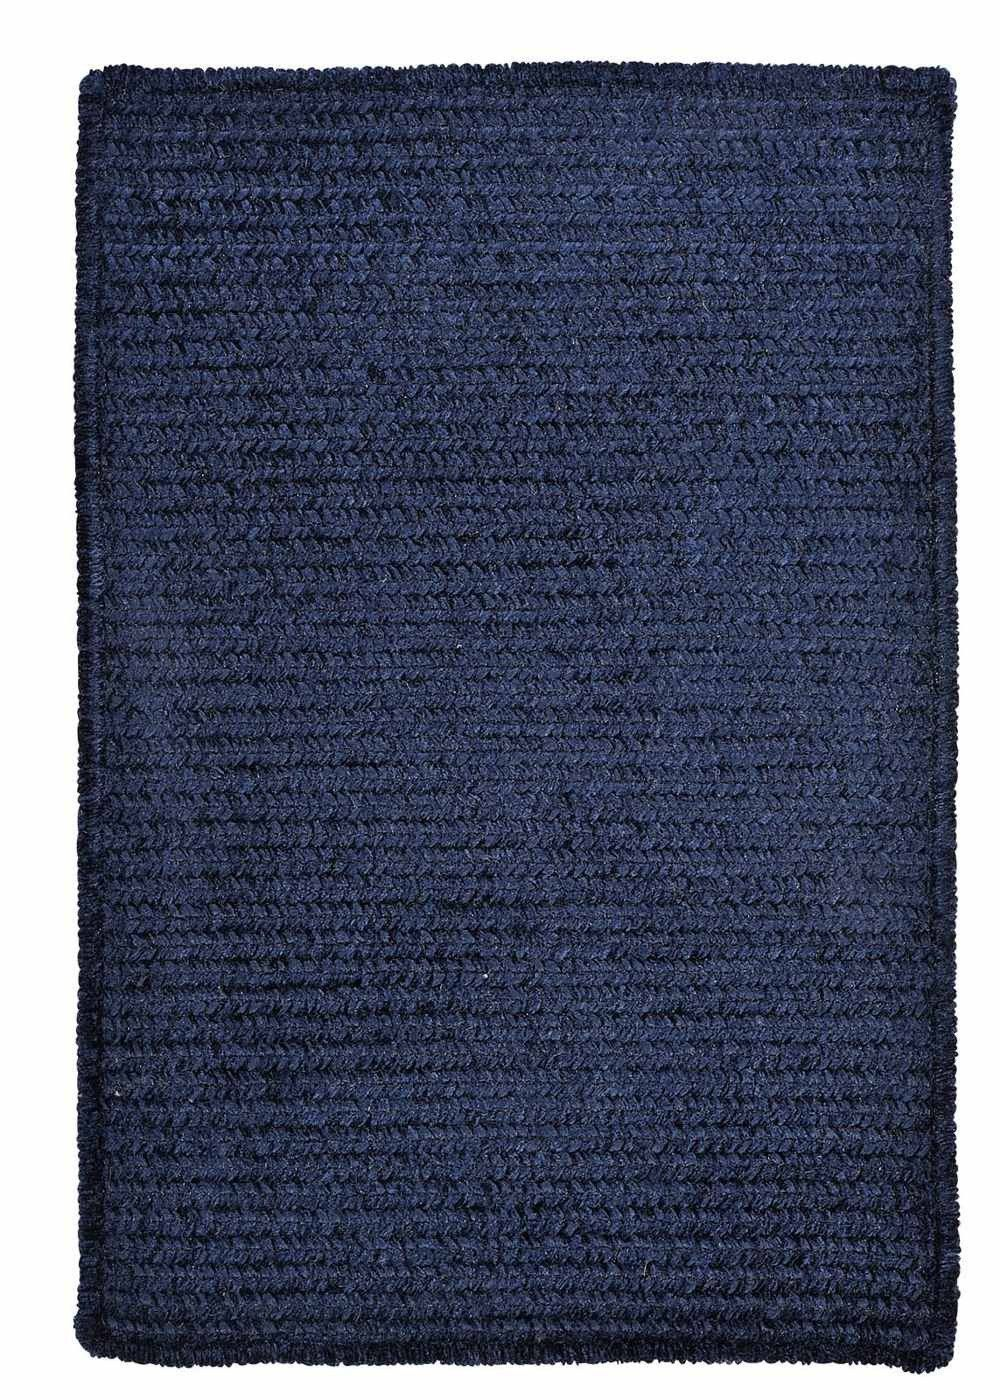 Simple Soft And Available In 18 Textured Colors We Ve Made It To Find A Braided Chenille Rug Compliment Your Indoor Or Outdoor Living E